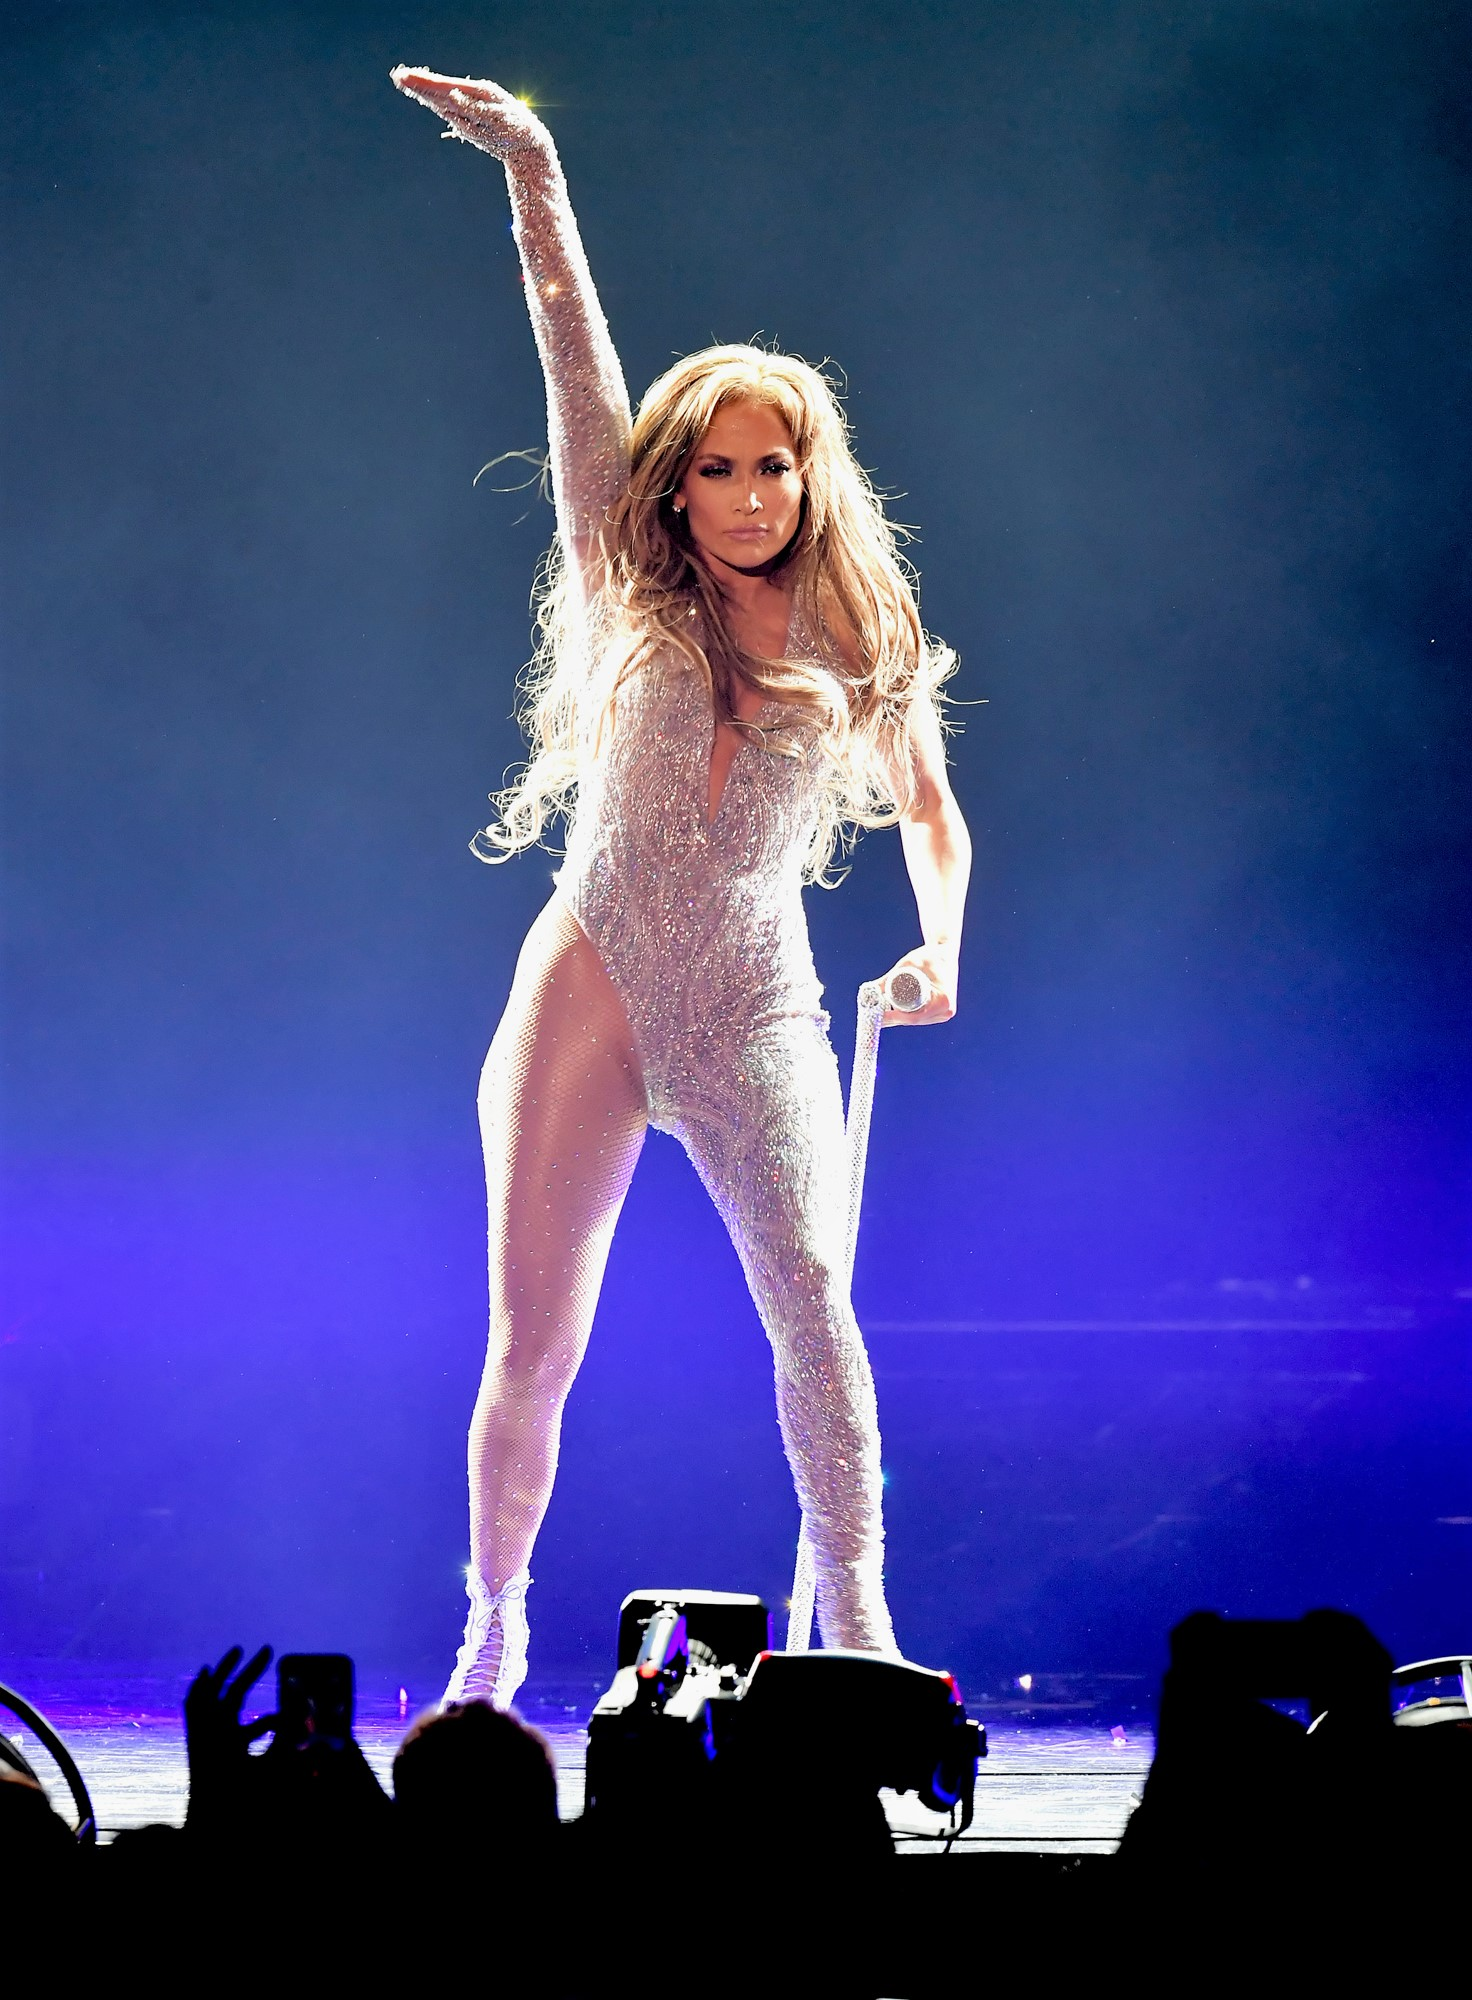 Jennifer Lopez Kicks Off Her 50th Birthday Tour with a 'Limitless' Duet with Daughter Emme, 10